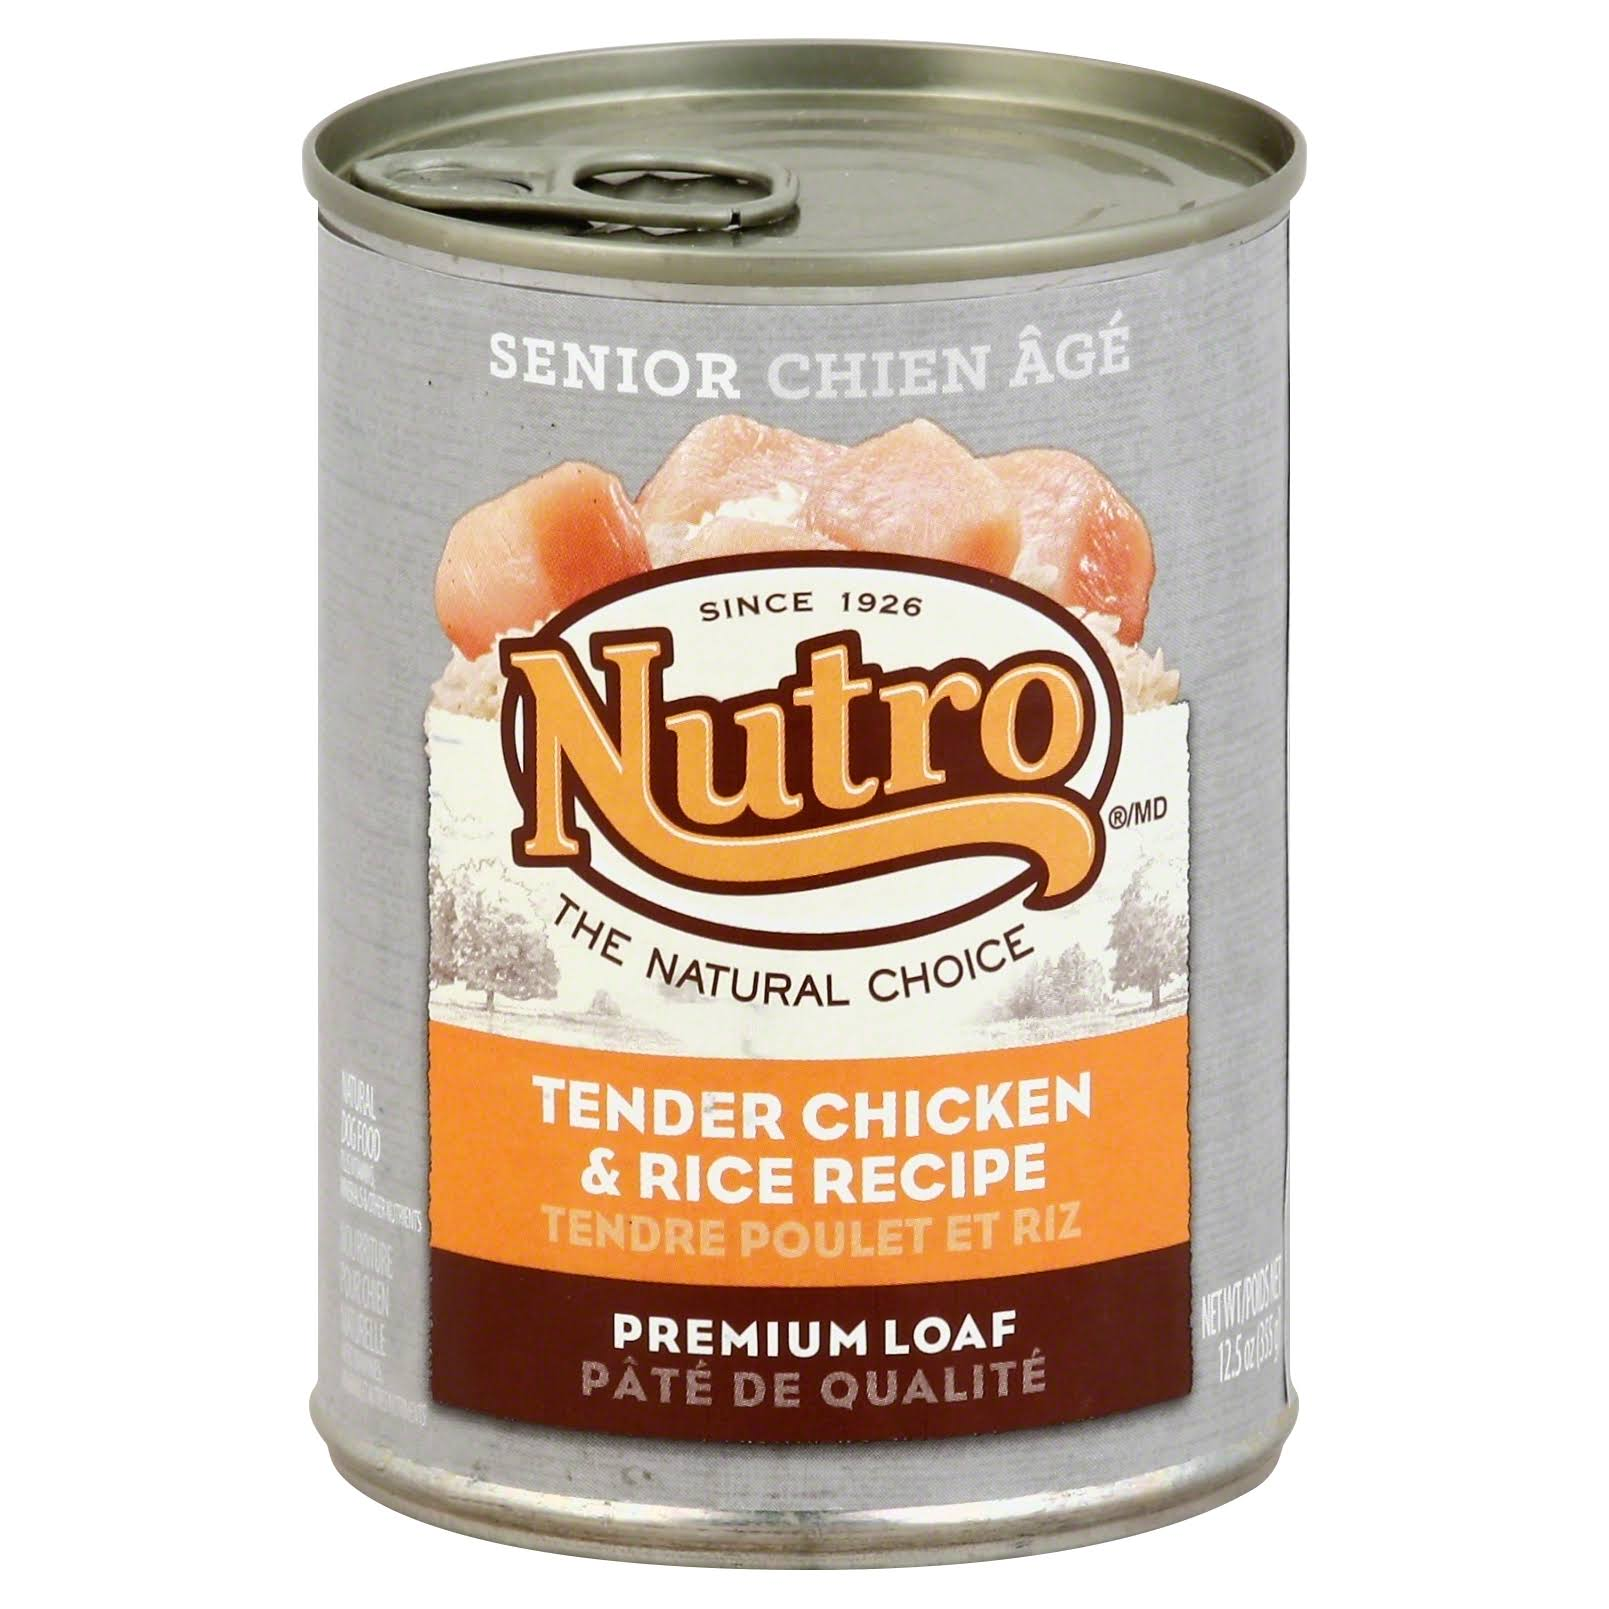 Nutro Natural Choice Senior Dog Food - Tender Chicken & Rice Recipe, 12.5oz